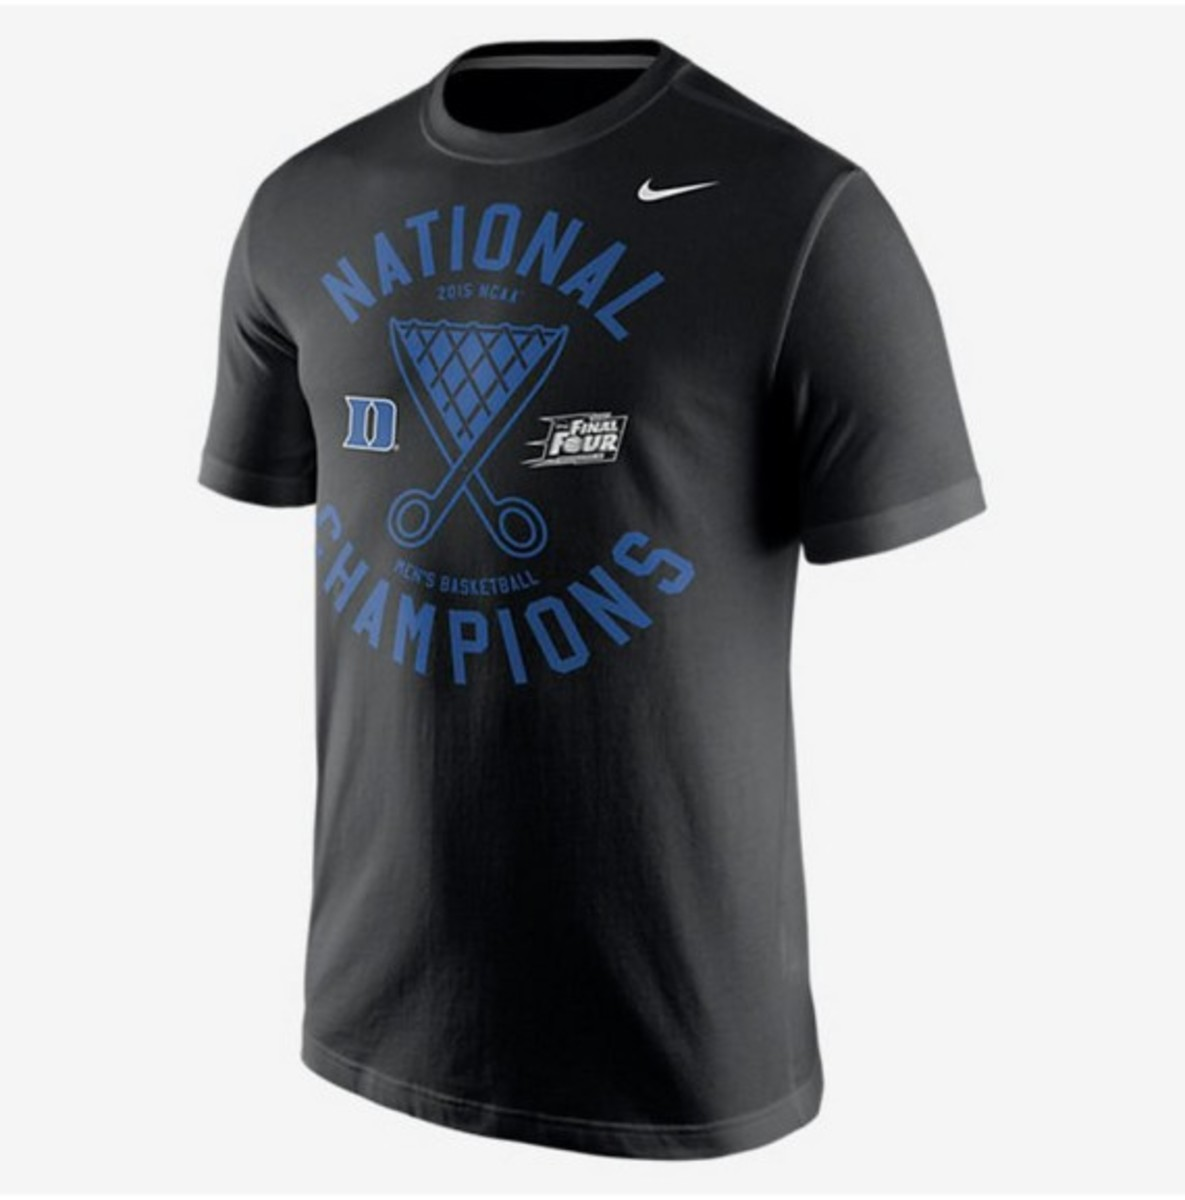 Nike Celebrates Duke's Fifth National Championship with Limited Edition Apparel - 1